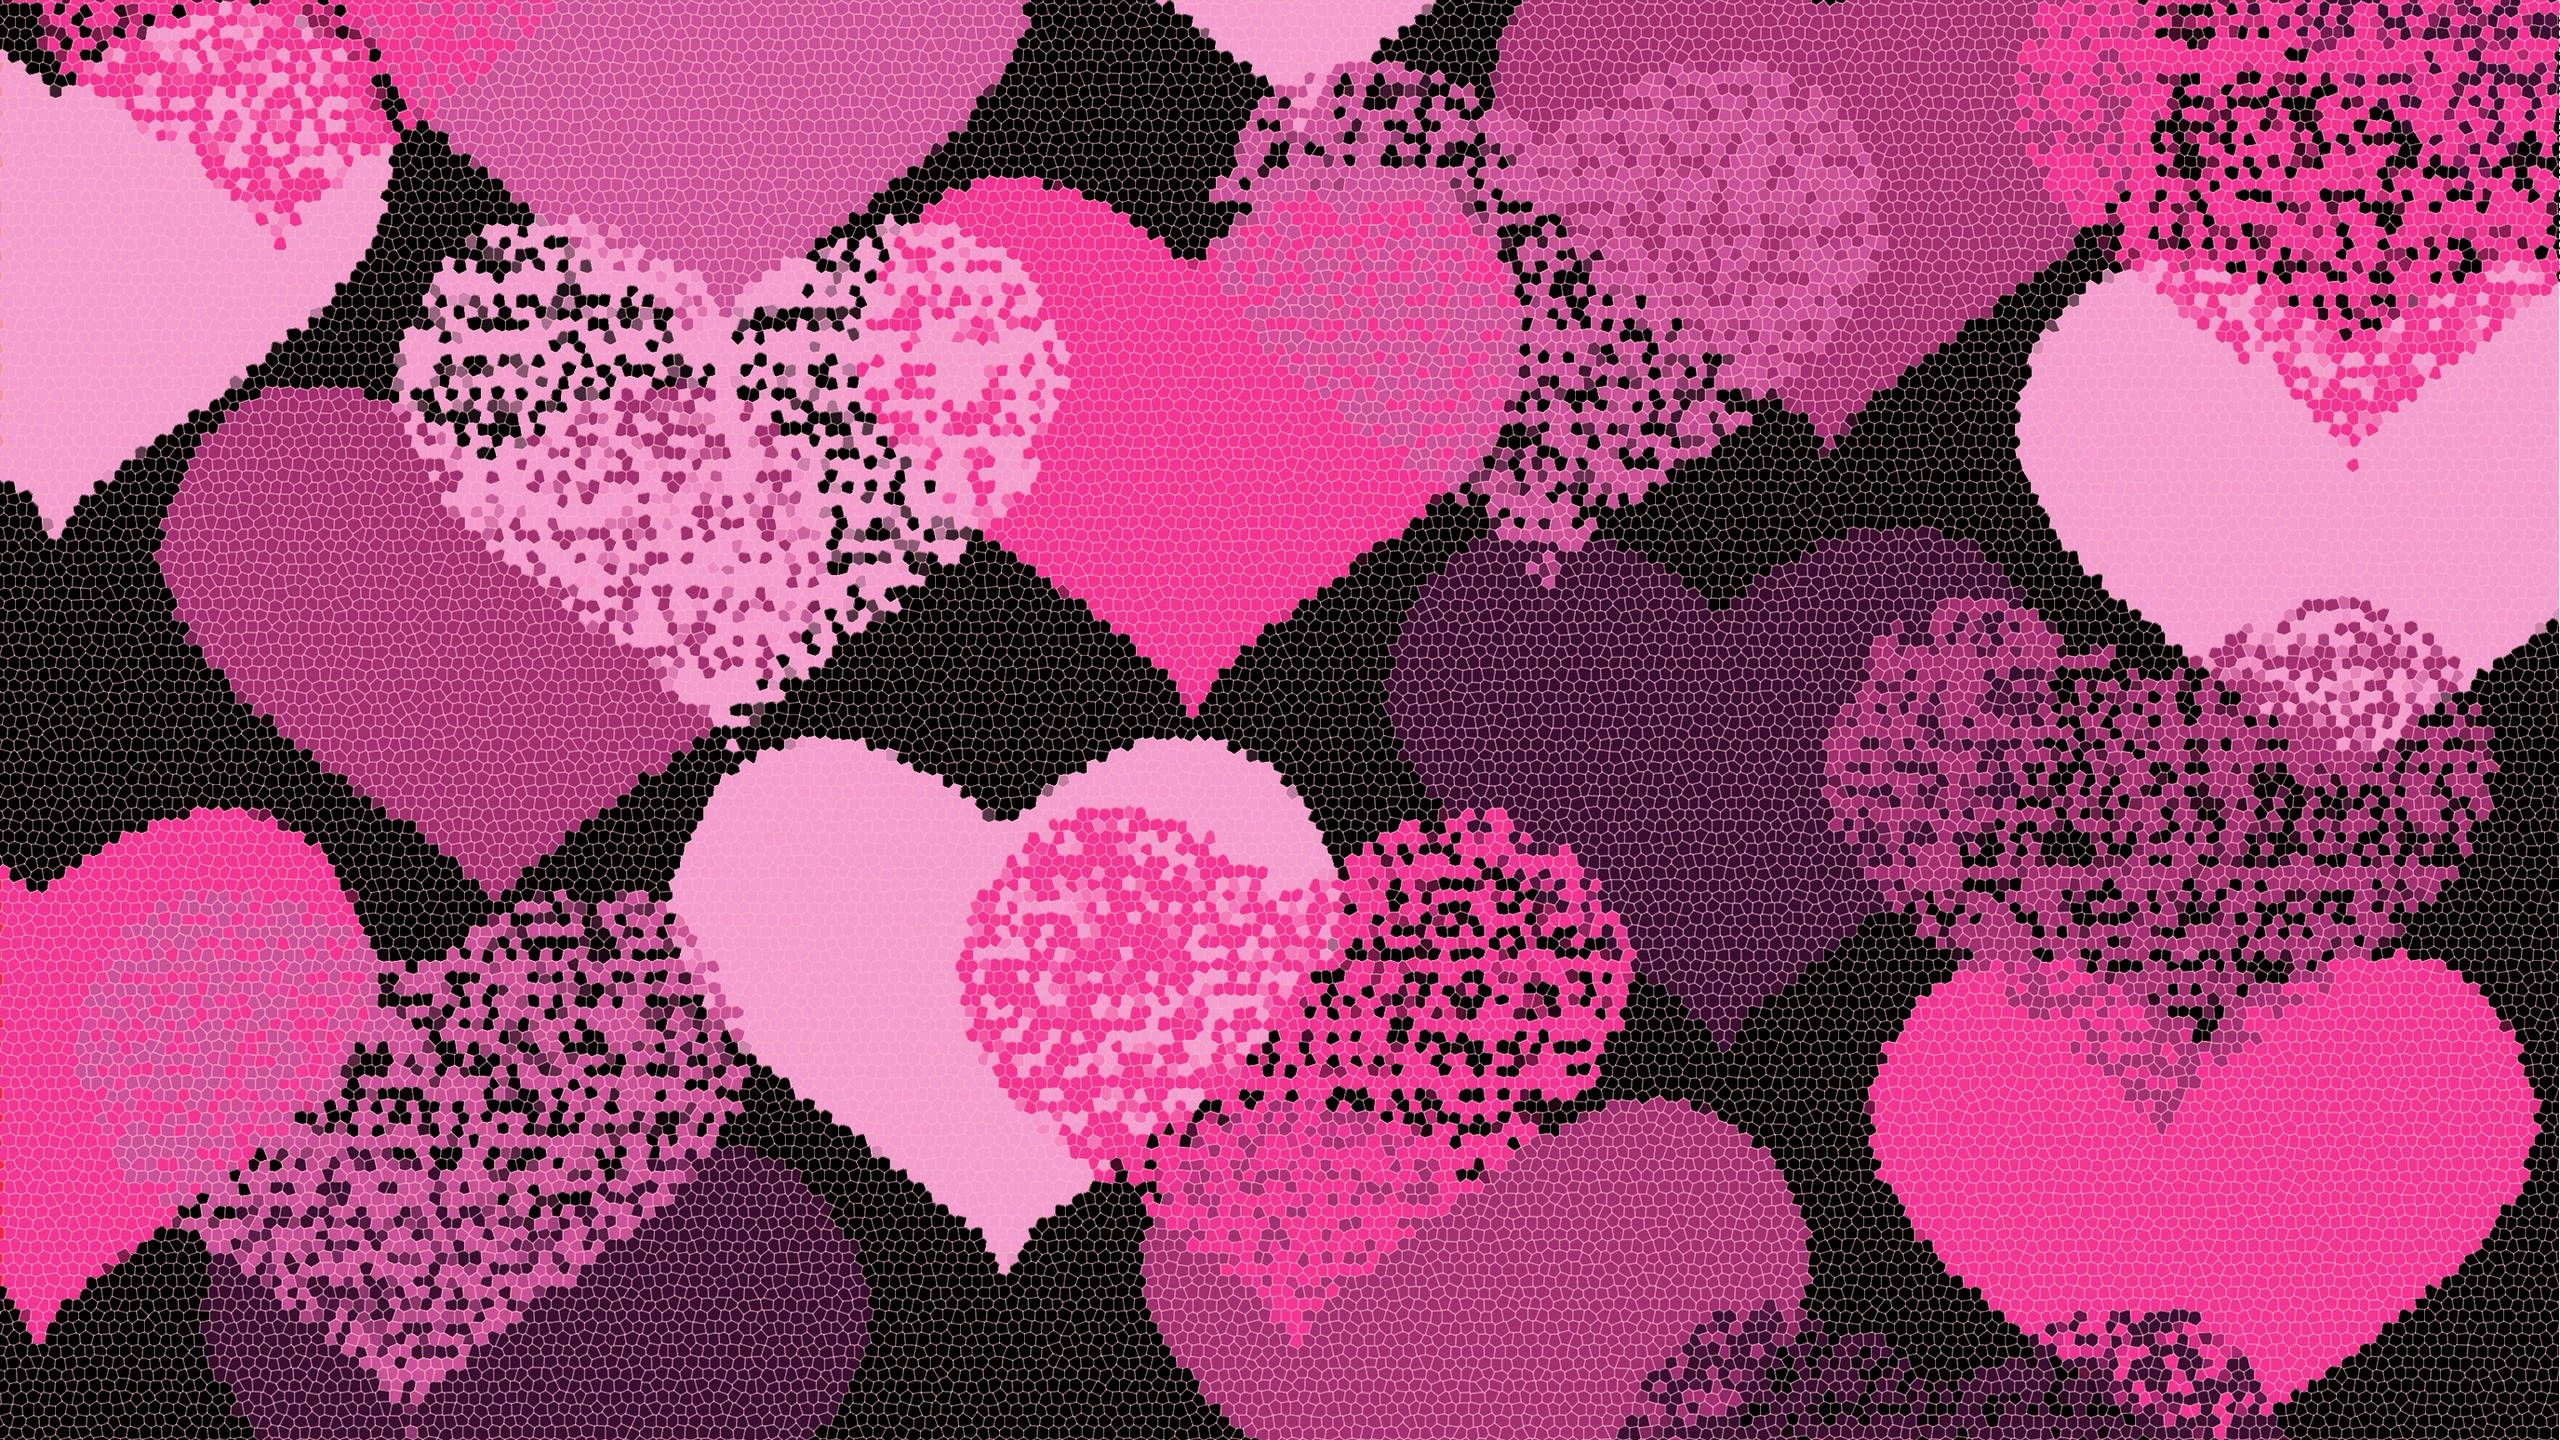 100 Beautiful Pink Hearts Wallpapers Combination Watt